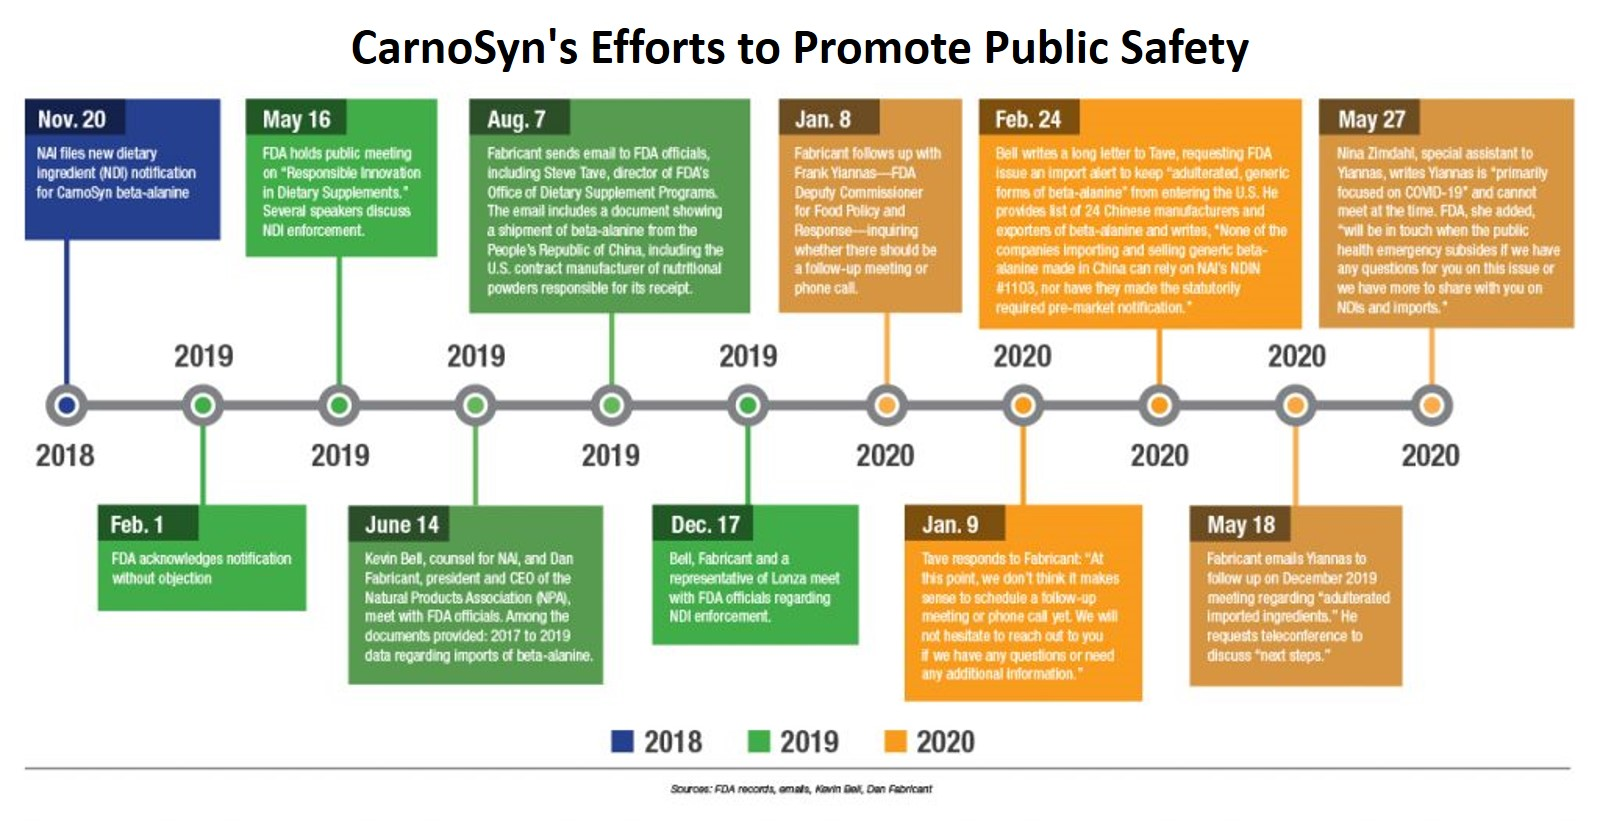 CarnoSyn's Efforts to Promote Public Safety